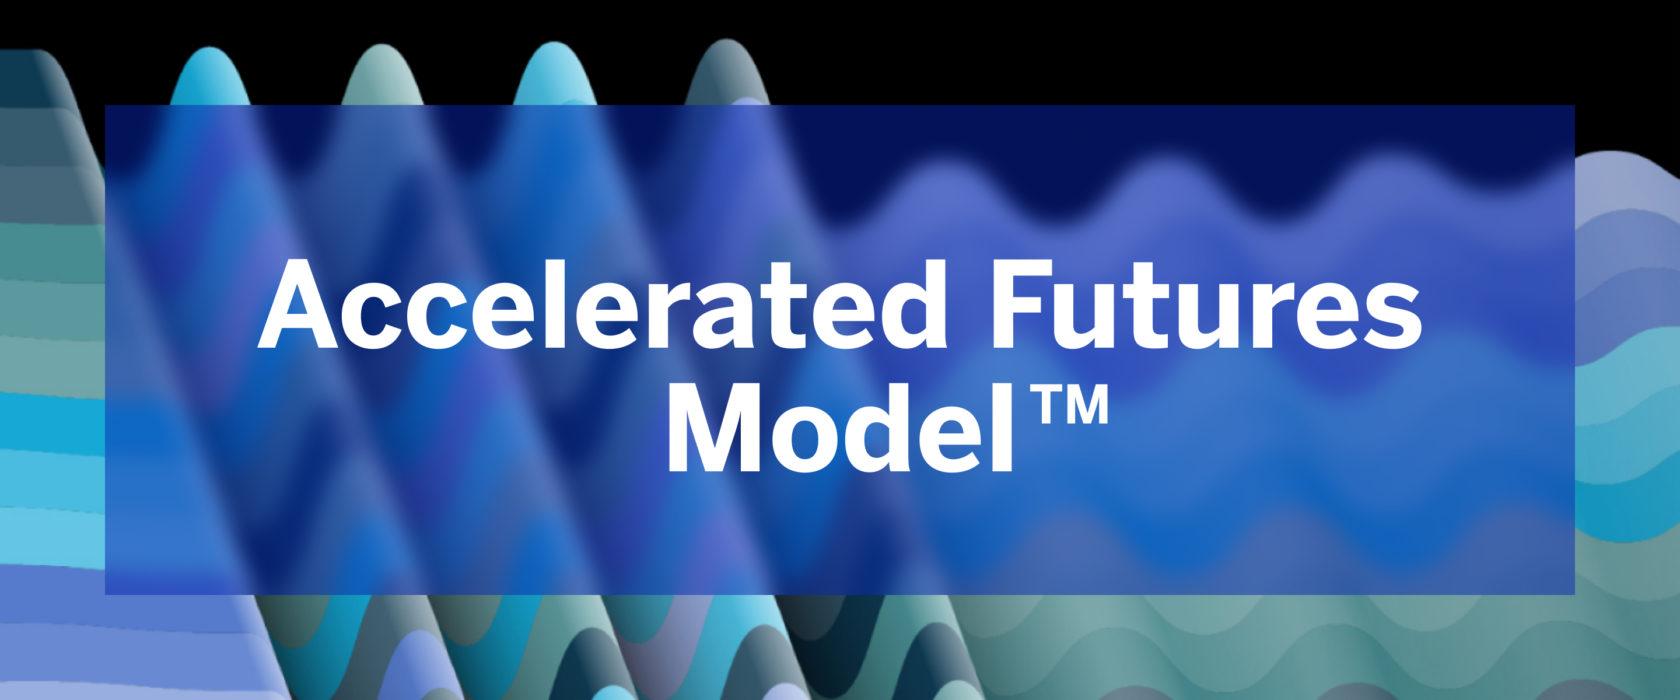 Accelerated Futures Model